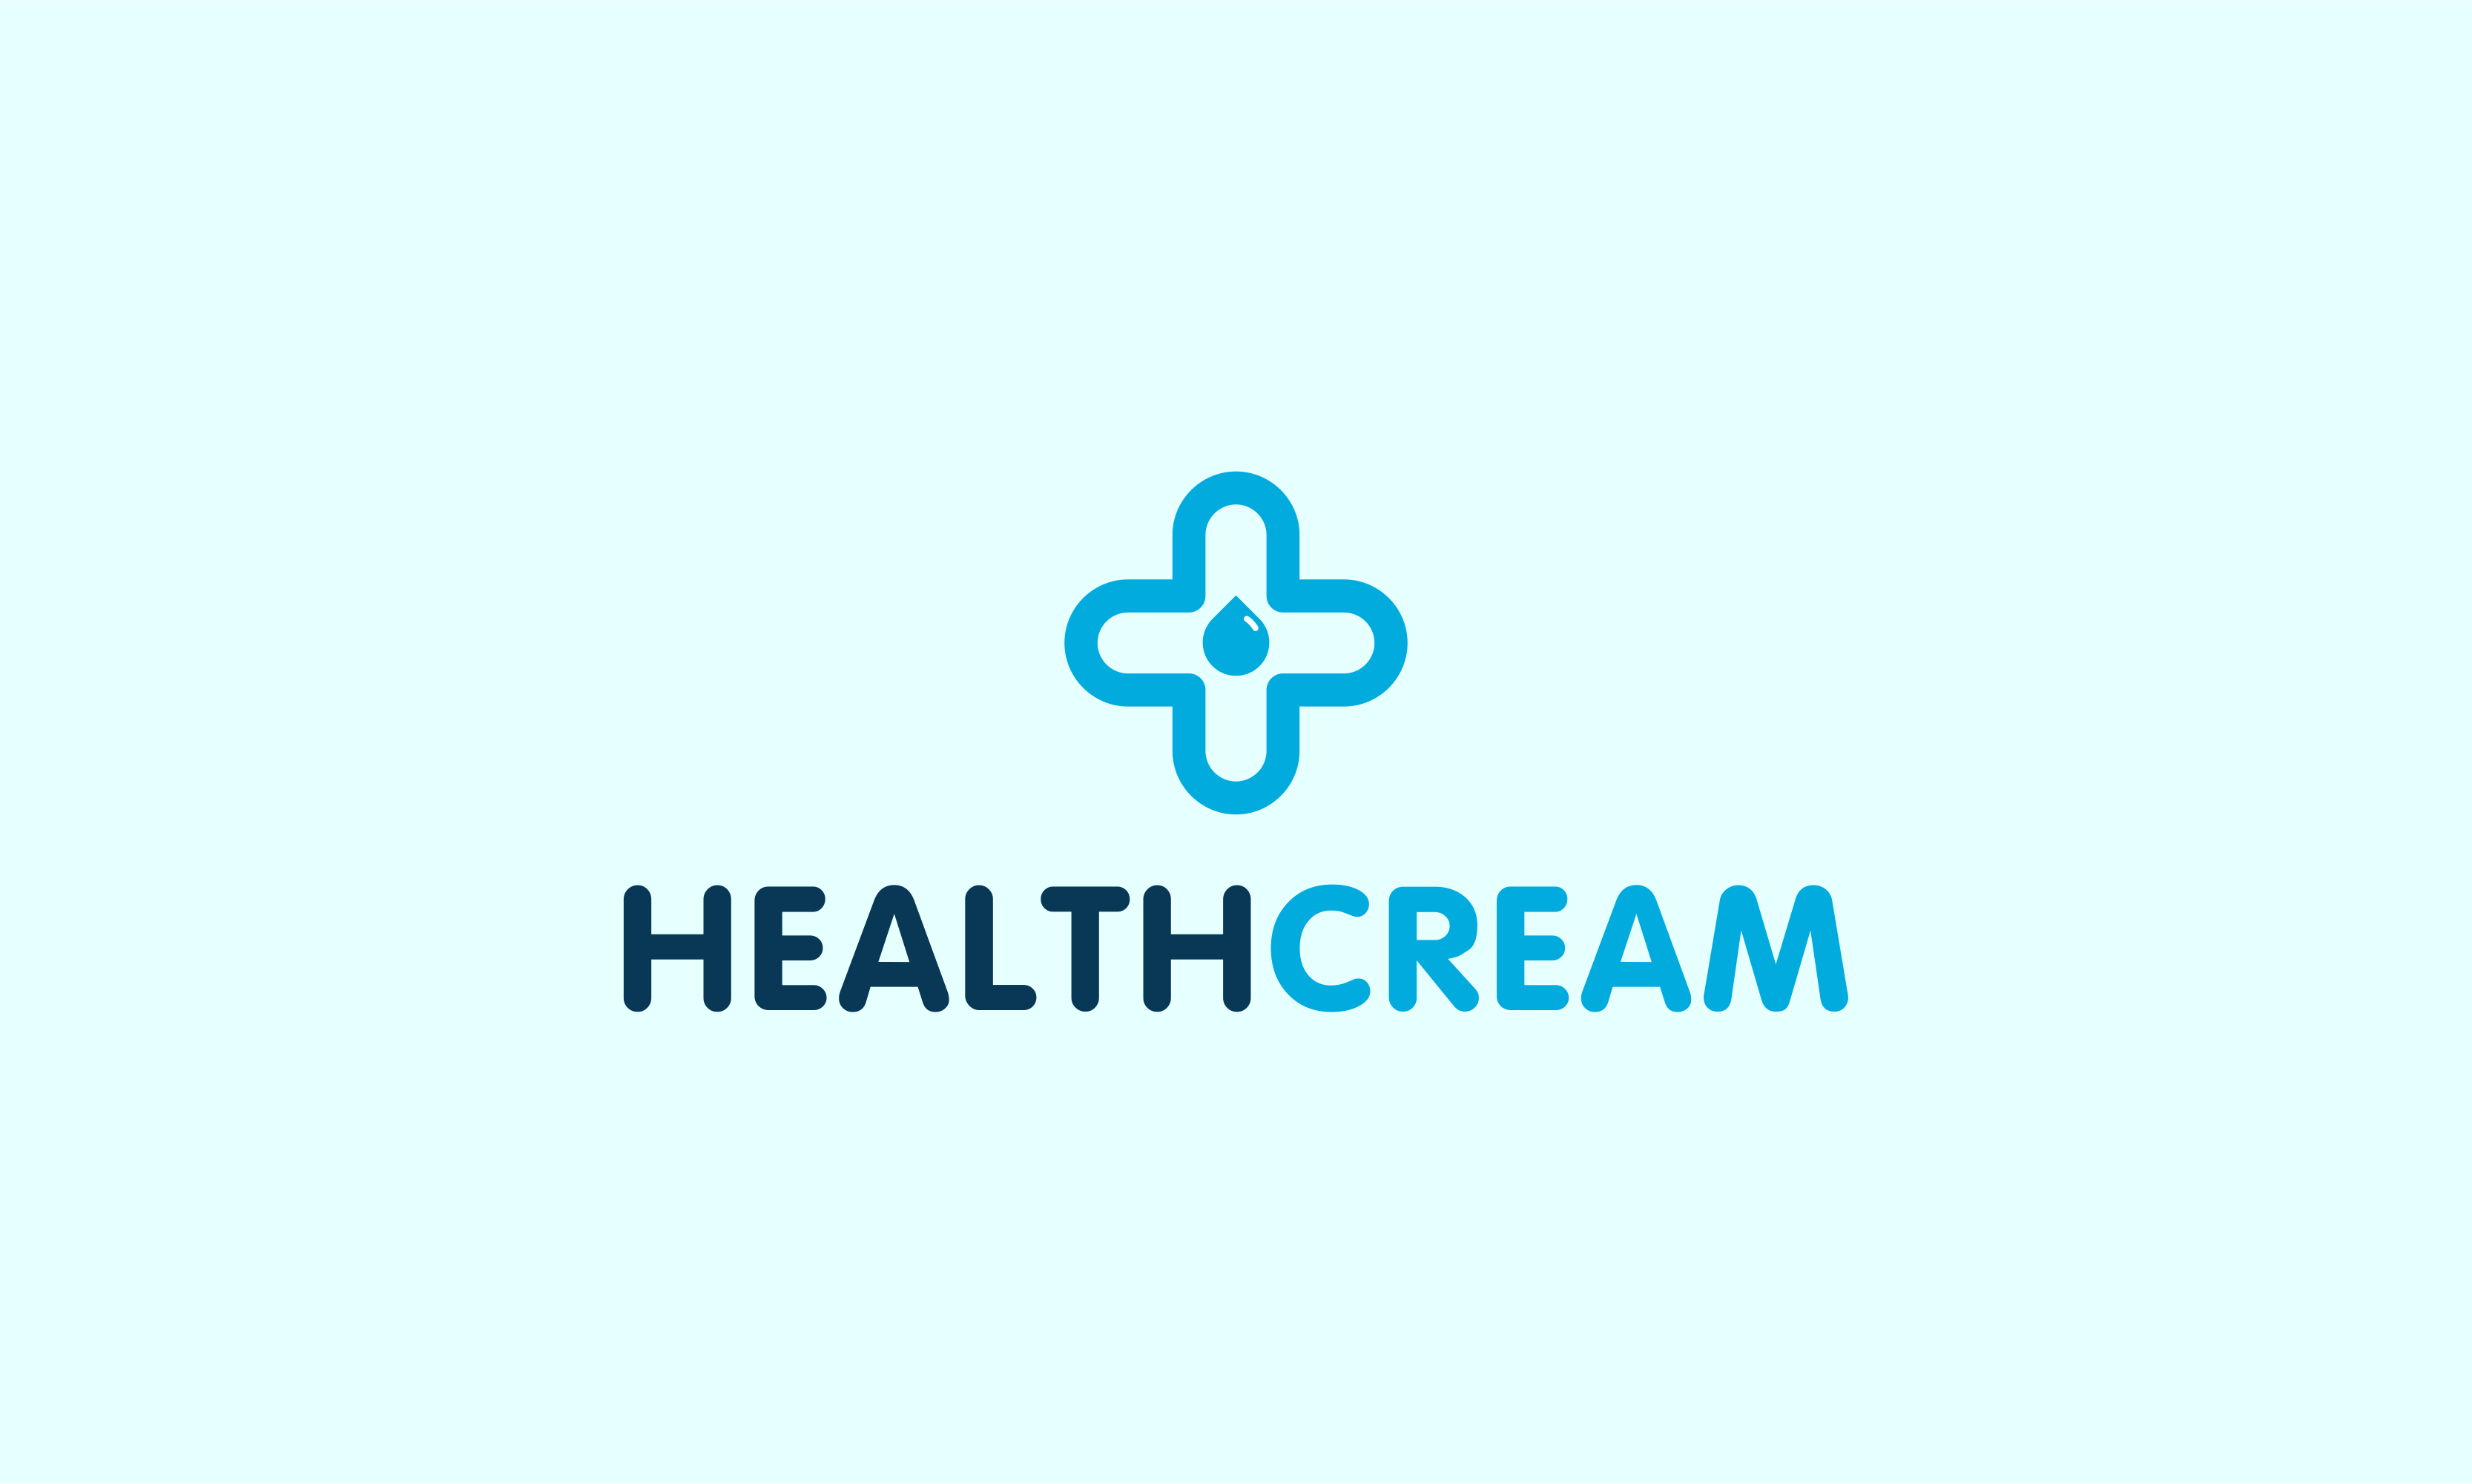 HealthCream logo